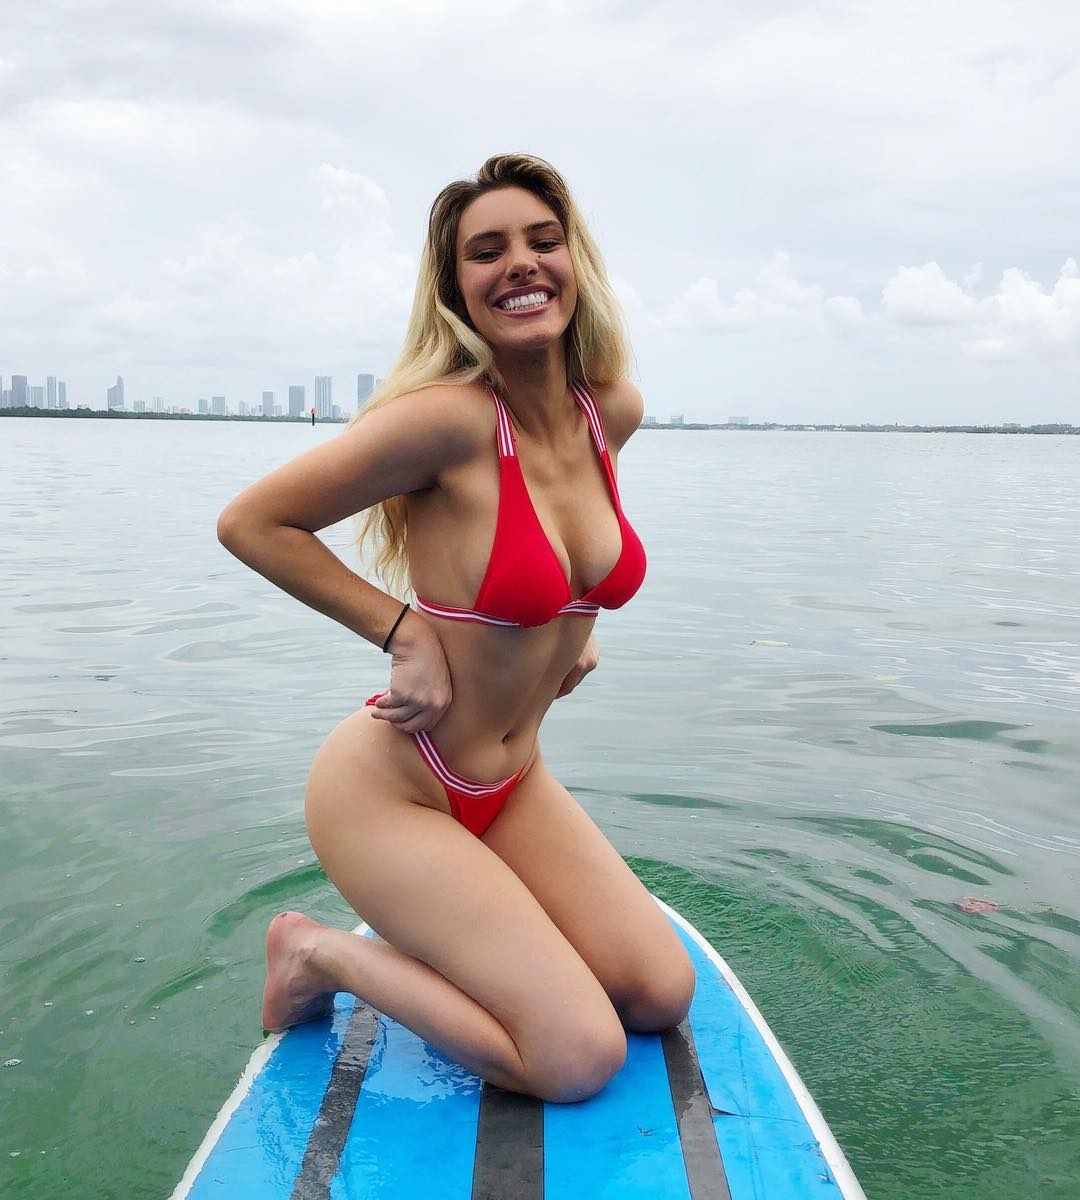 Lele Pons Hot in Red Bikini